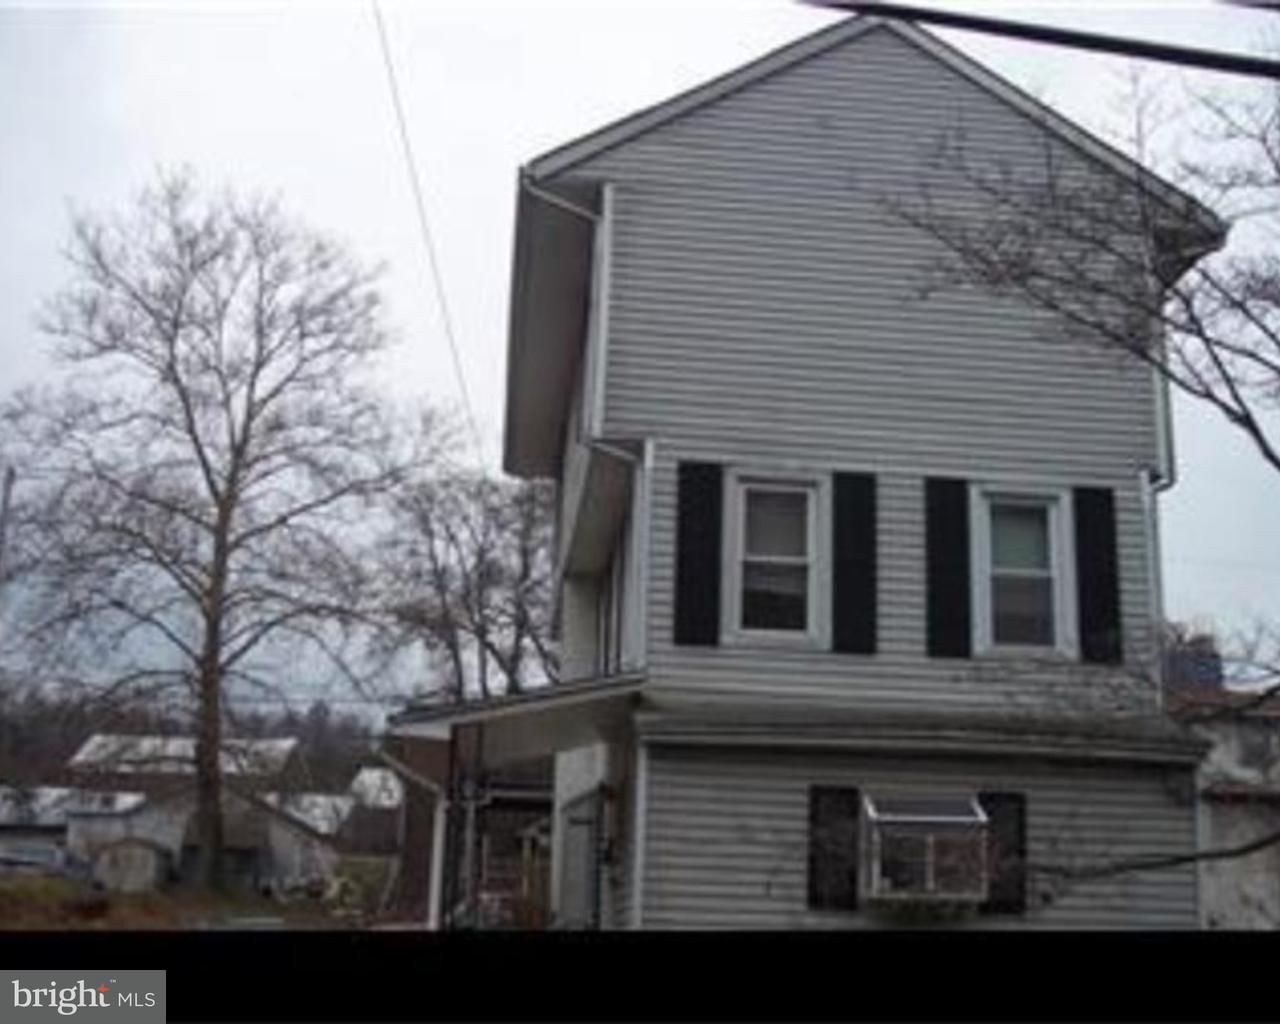 201 BROWN ST, BIRDSBORO - Listed at $95,000,